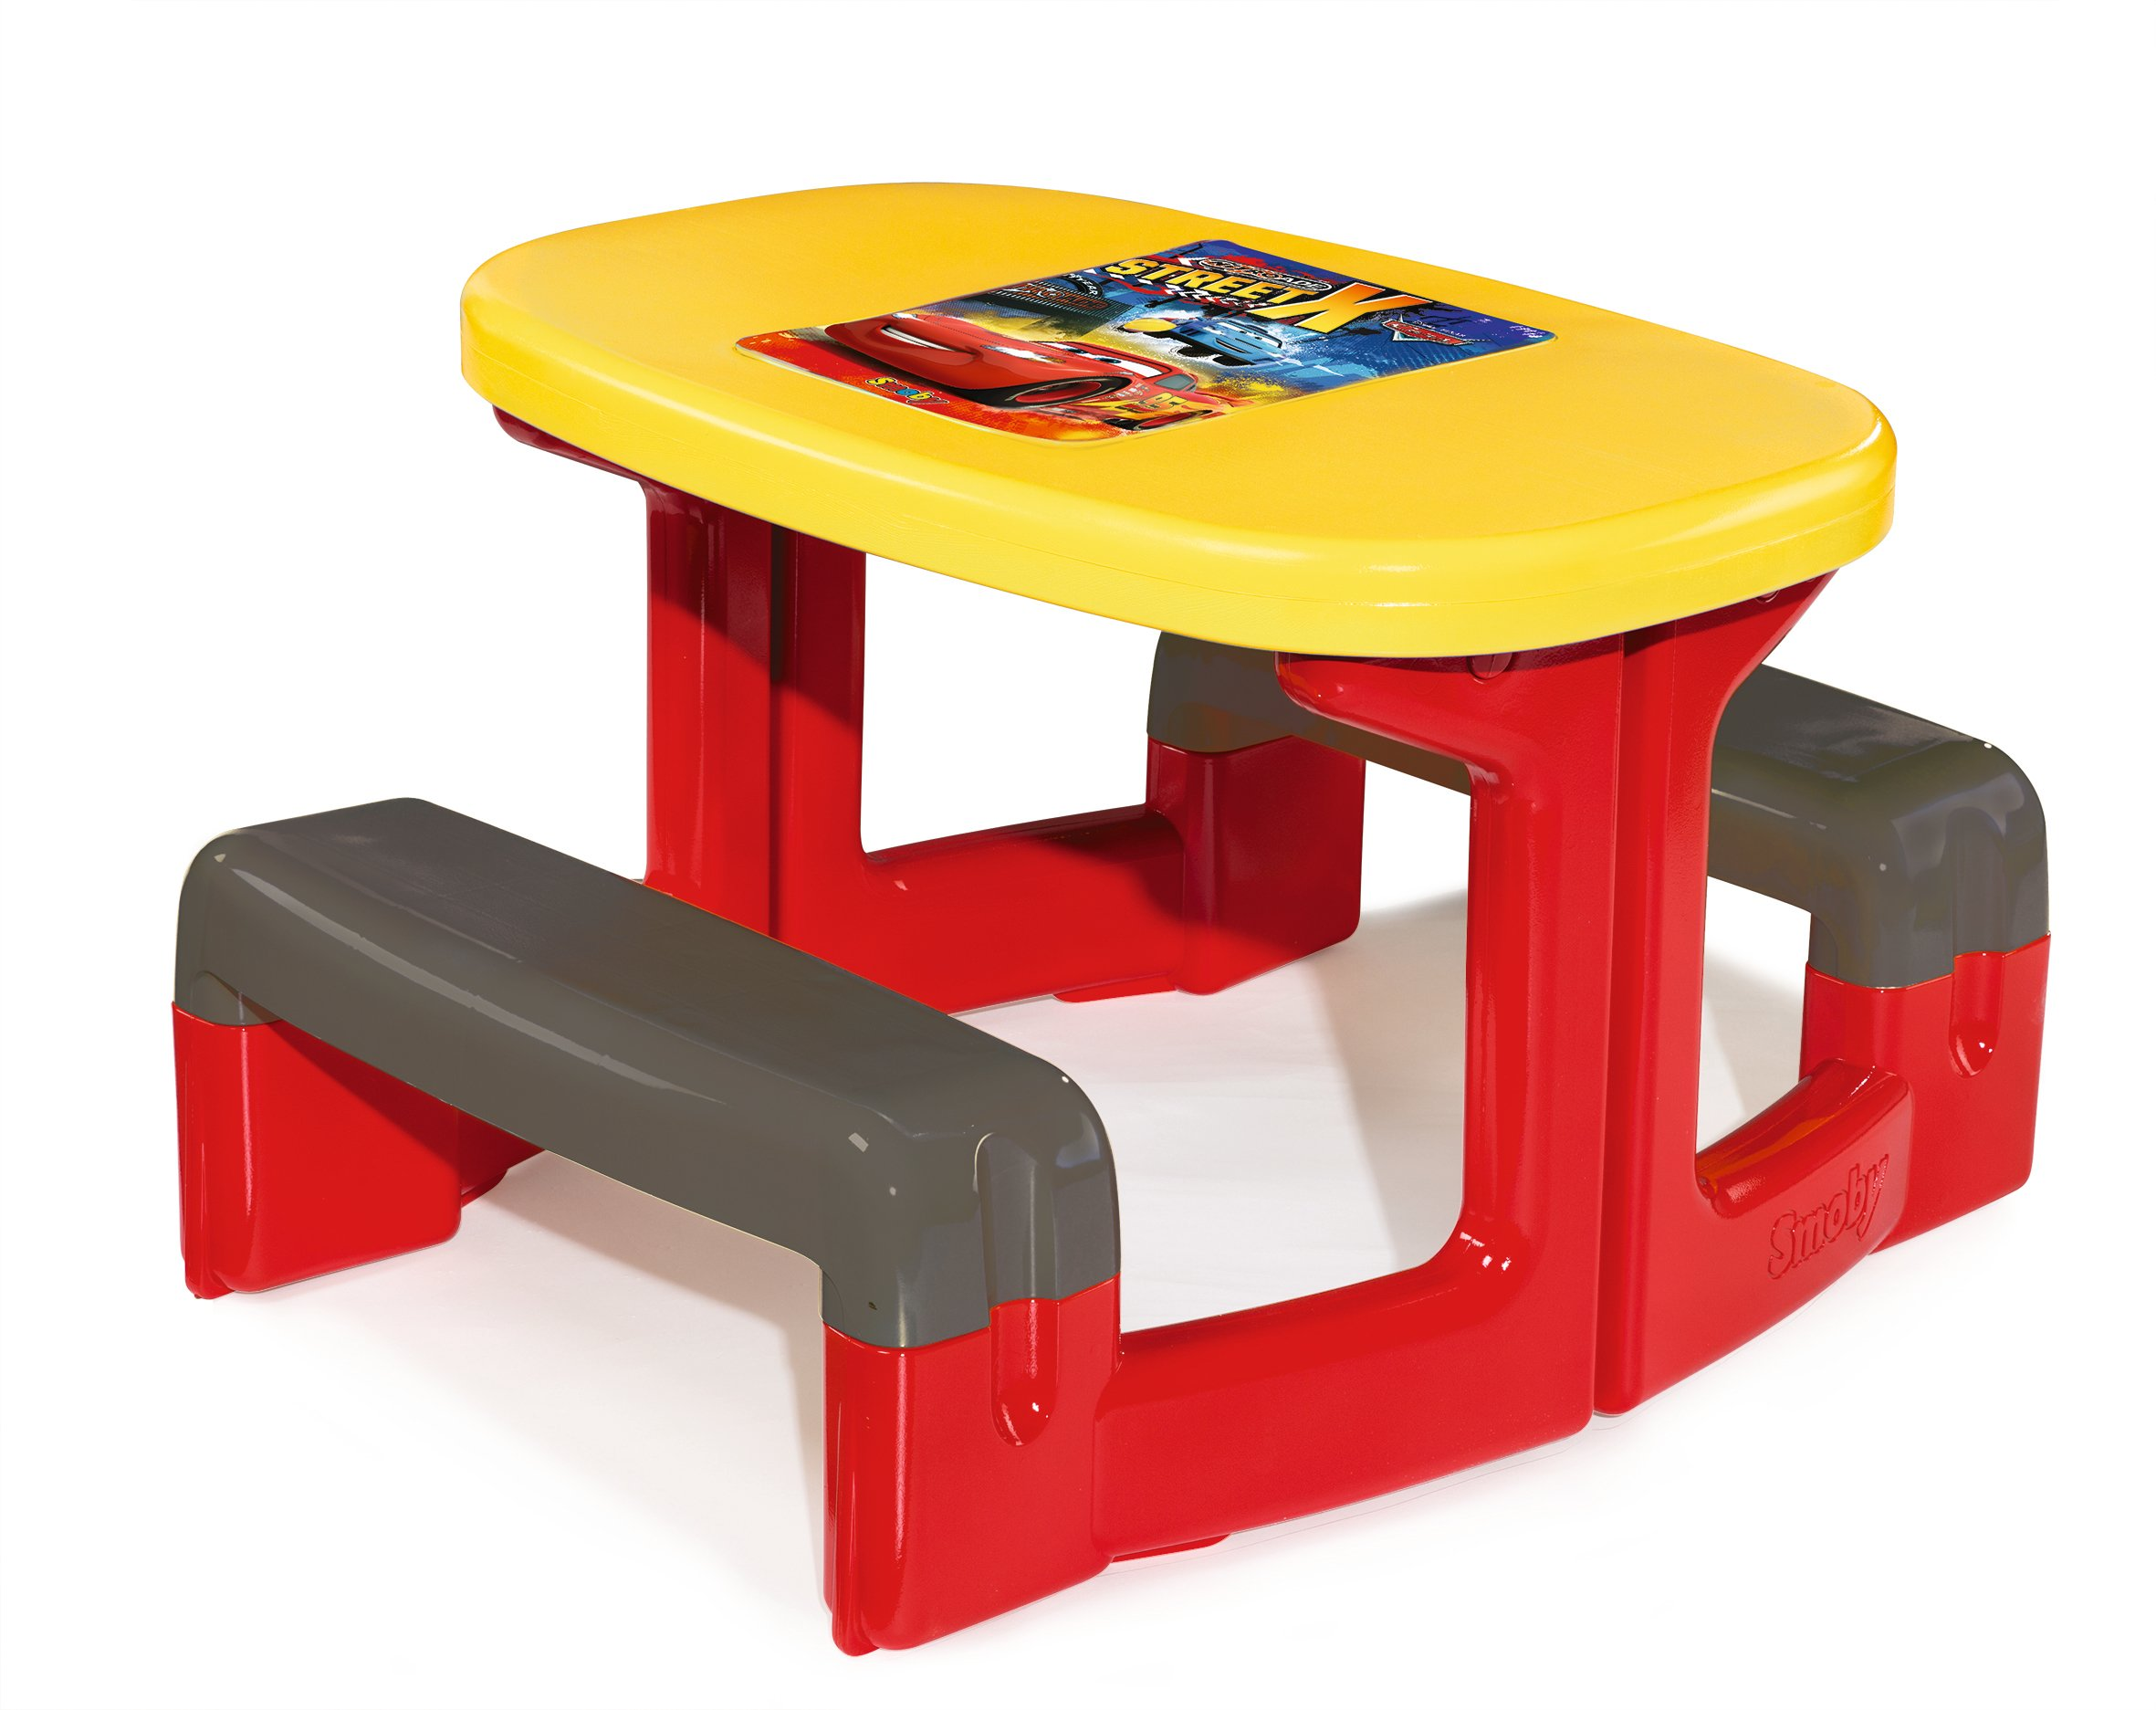 Smoby Cars Picnic Table Playground Equipment by Smoby